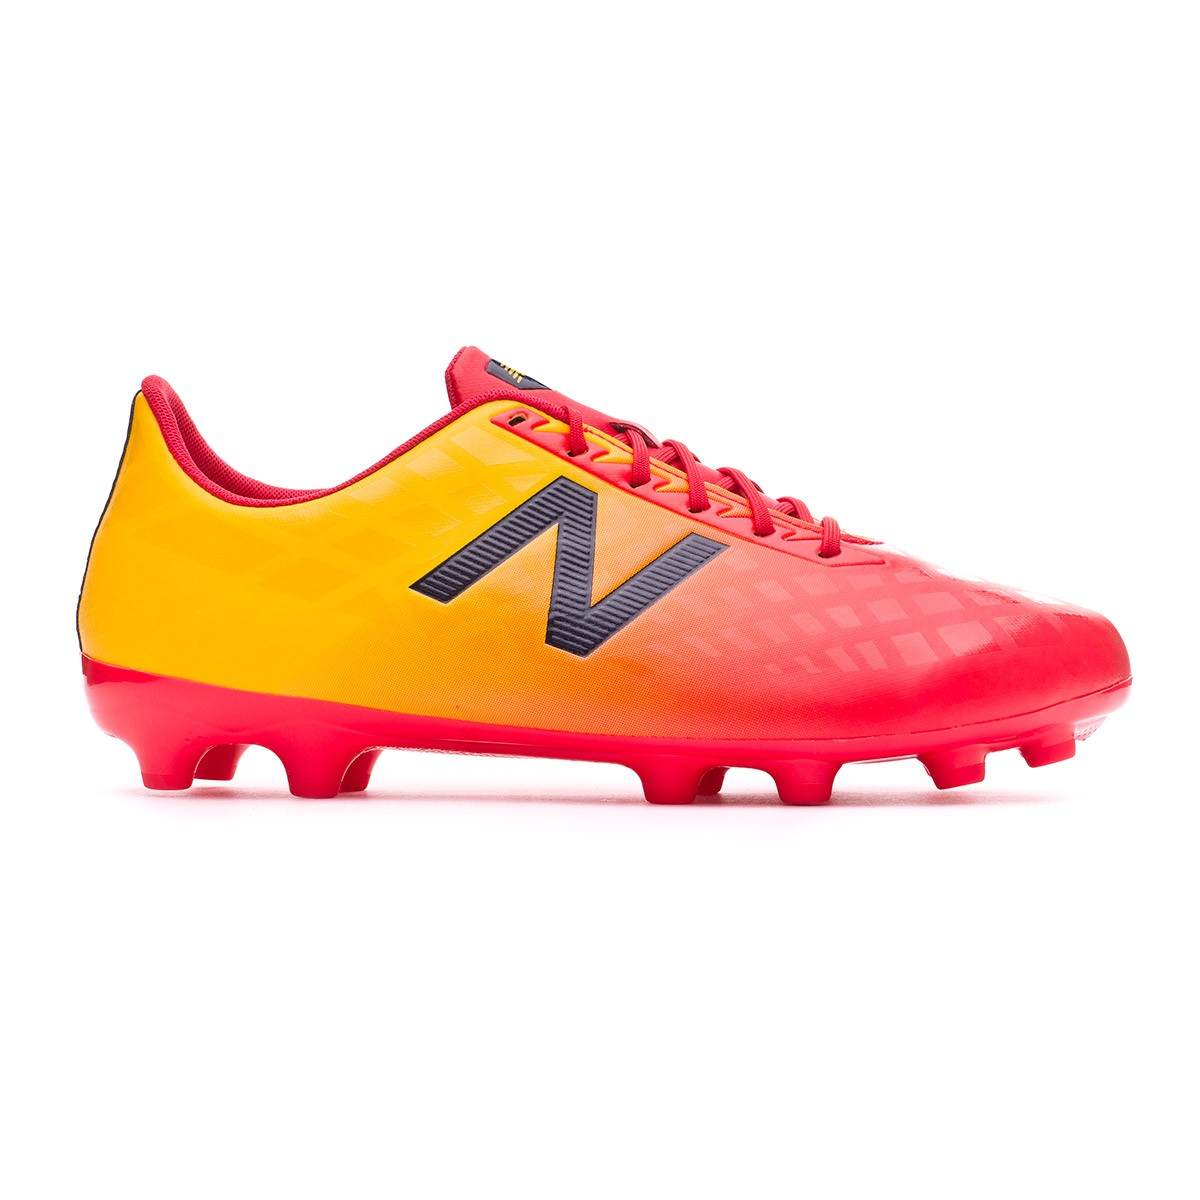 b94ef9296 Football Boots New Balance Furon 4.0 Dispatch AG Flame - Football store  Fútbol Emotion